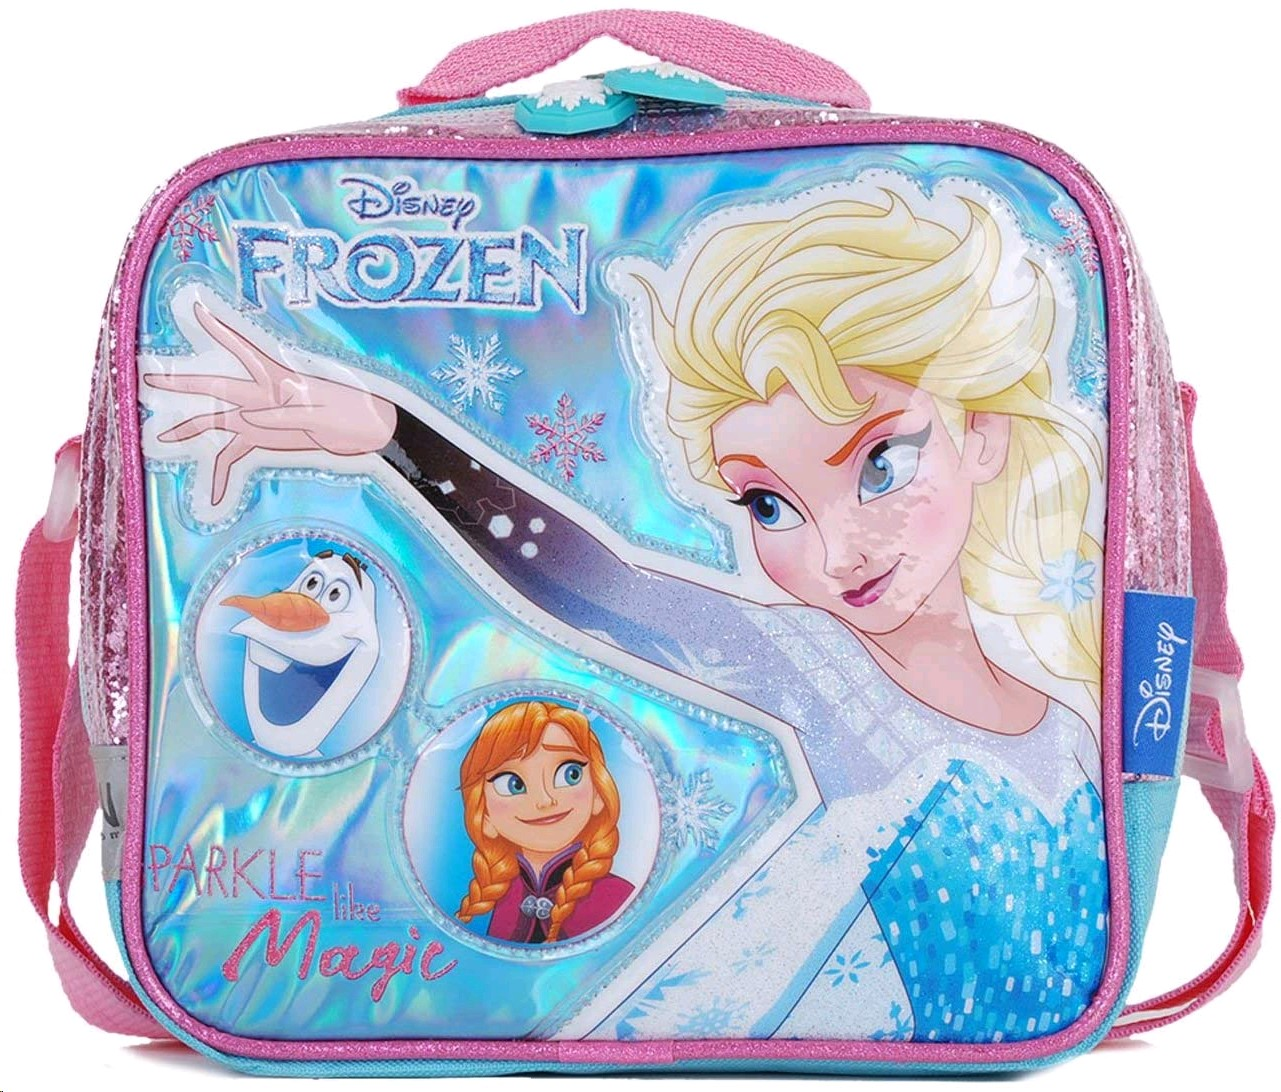 frozen-beslenme-cantasi-95210